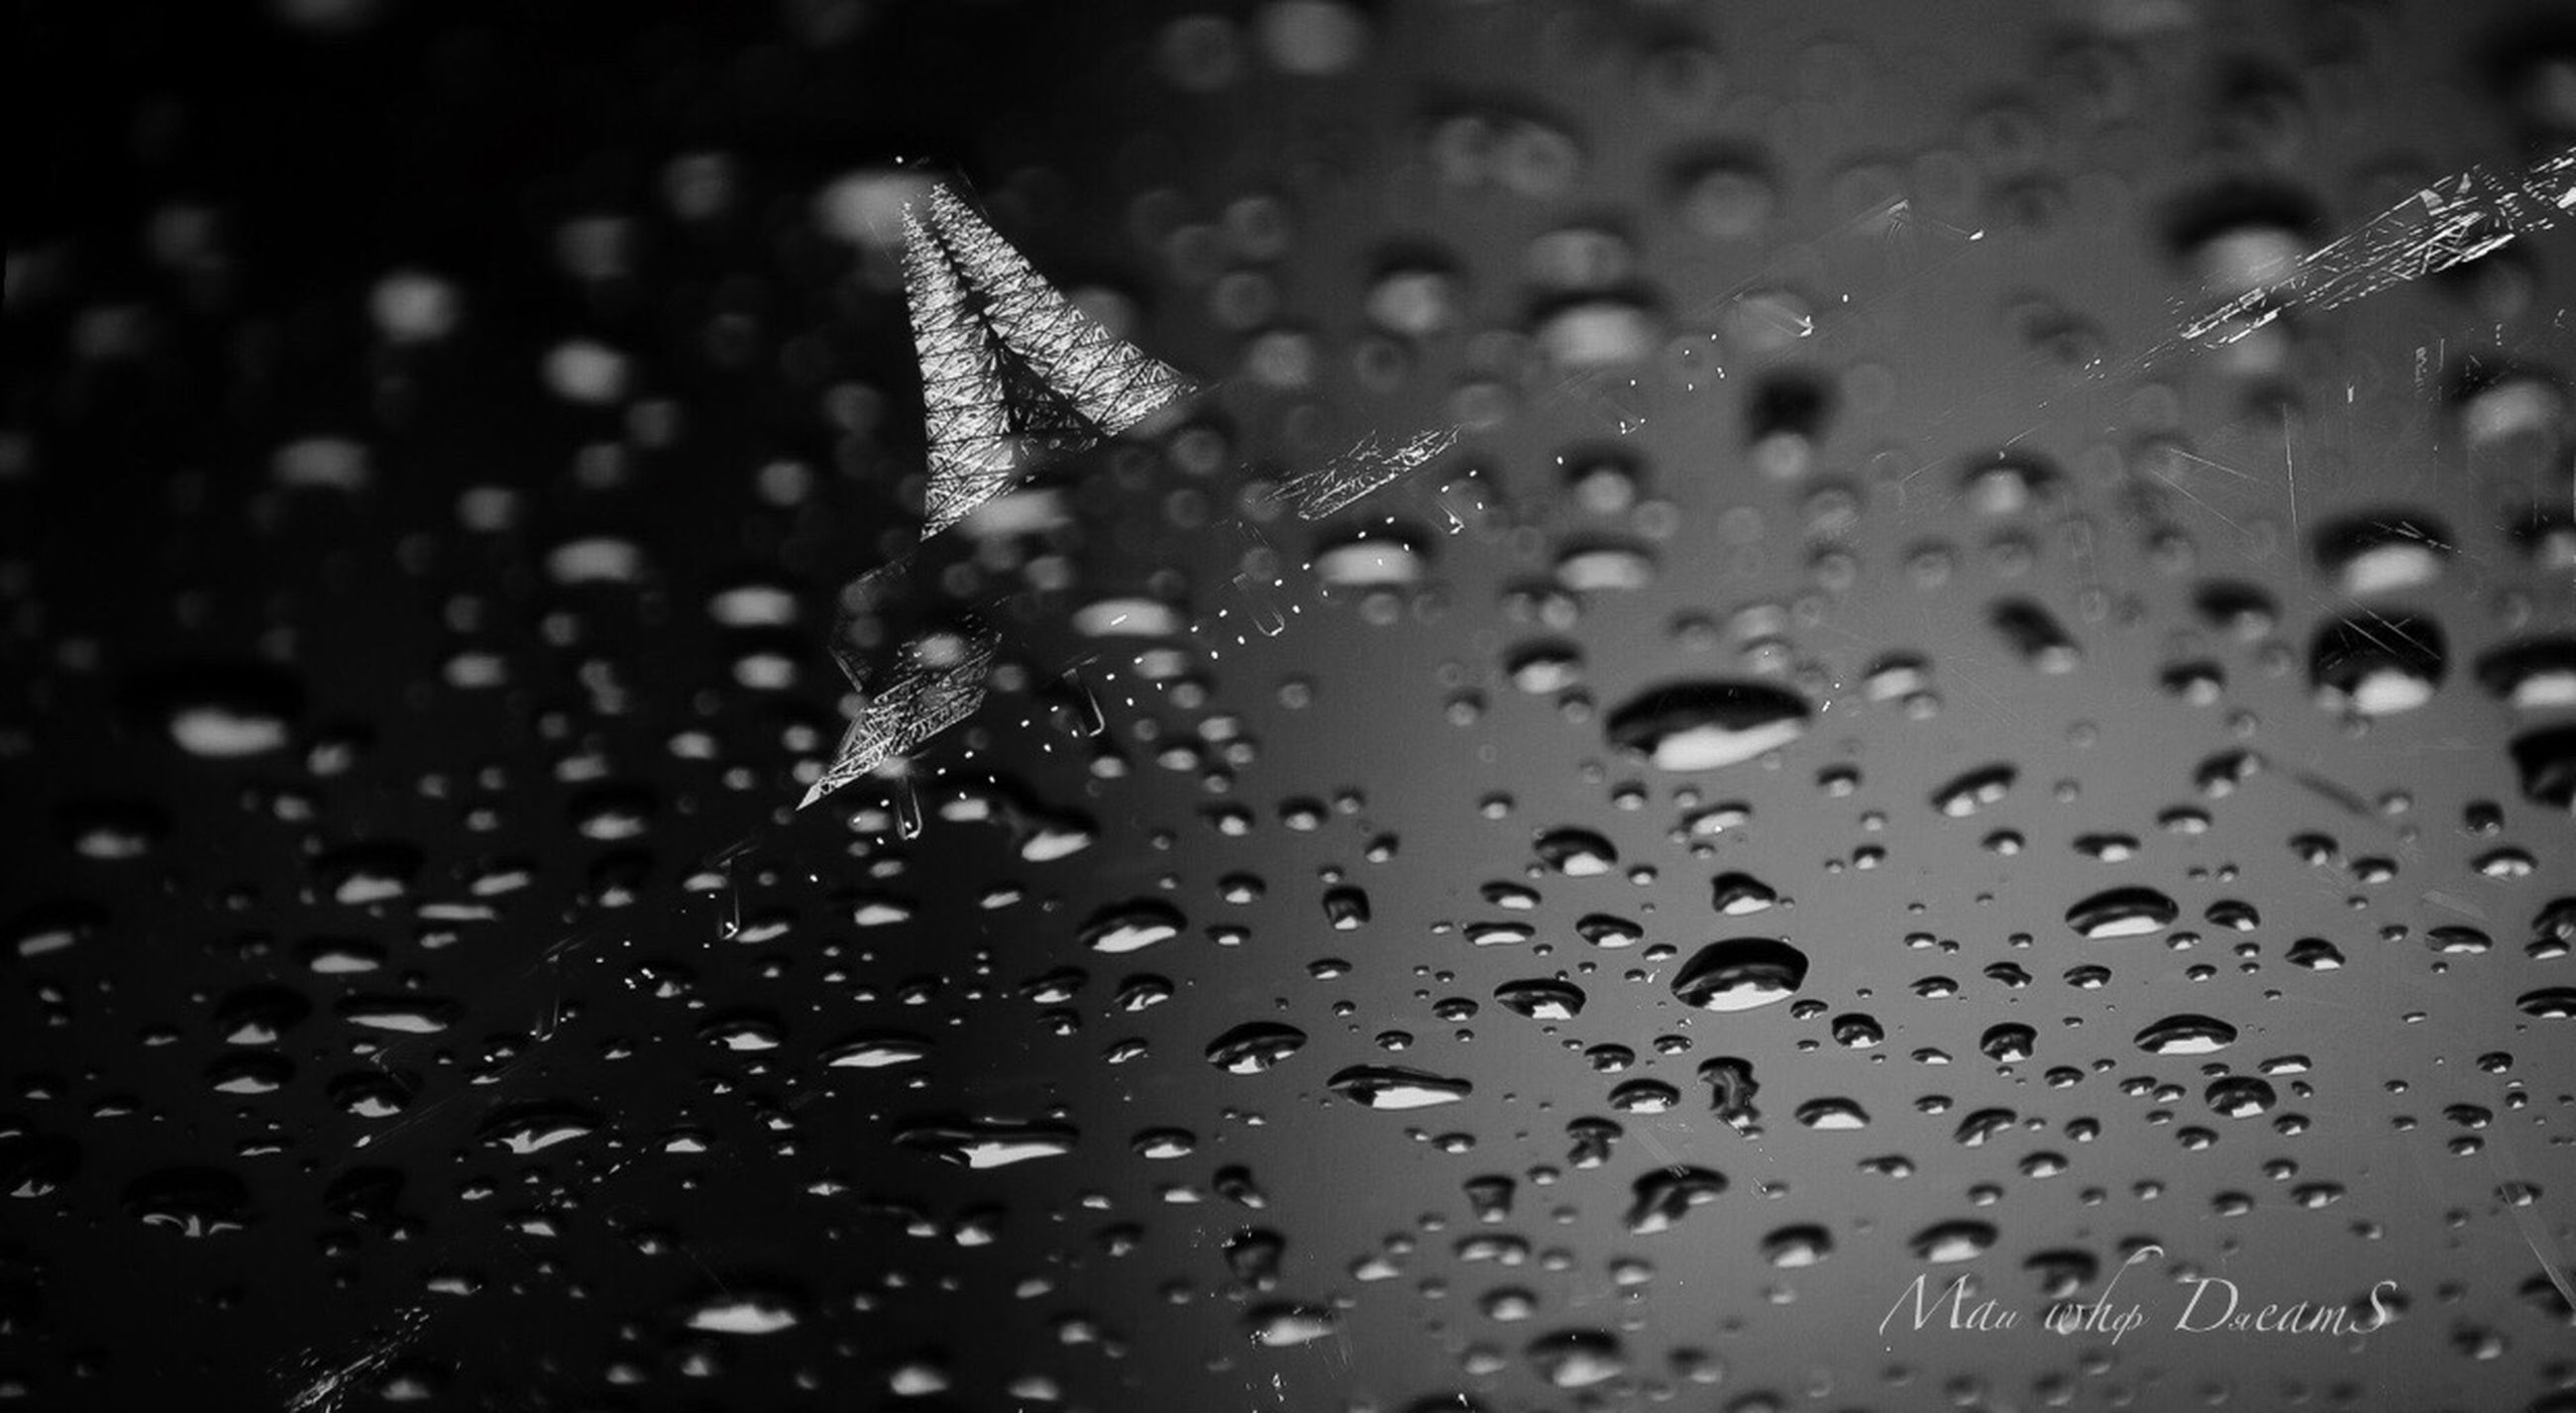 drop, wet, water, close-up, no people, selective focus, rain, window, raindrop, glass - material, focus on foreground, transparent, nature, full frame, indoors, rainy season, day, backgrounds, glass, dew, purity